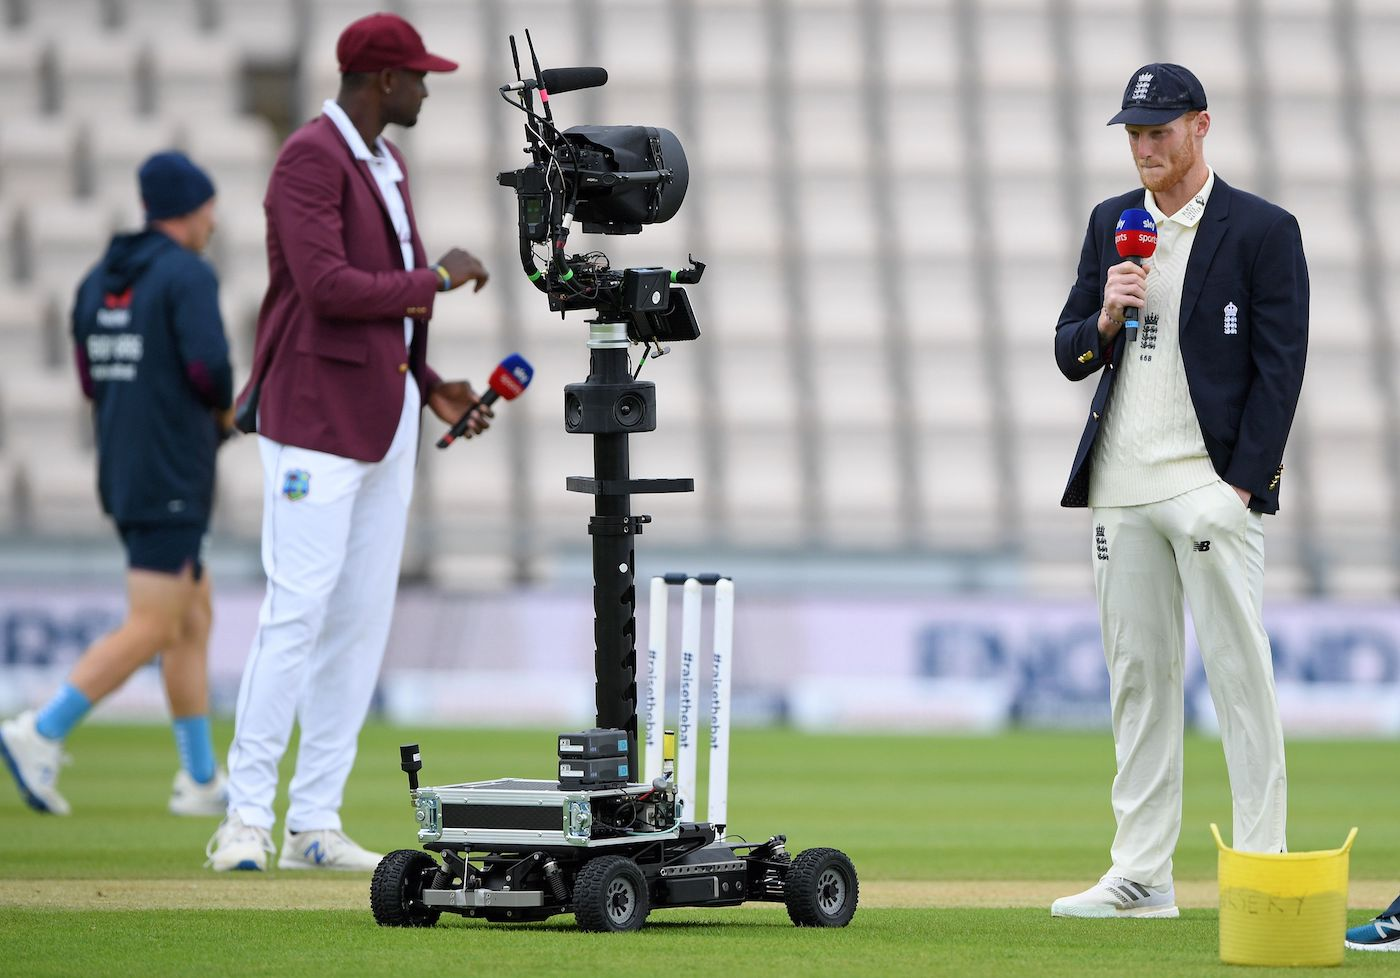 Jason Holder and Ben Stokes talk to the TV commentators through a remotely operated camera